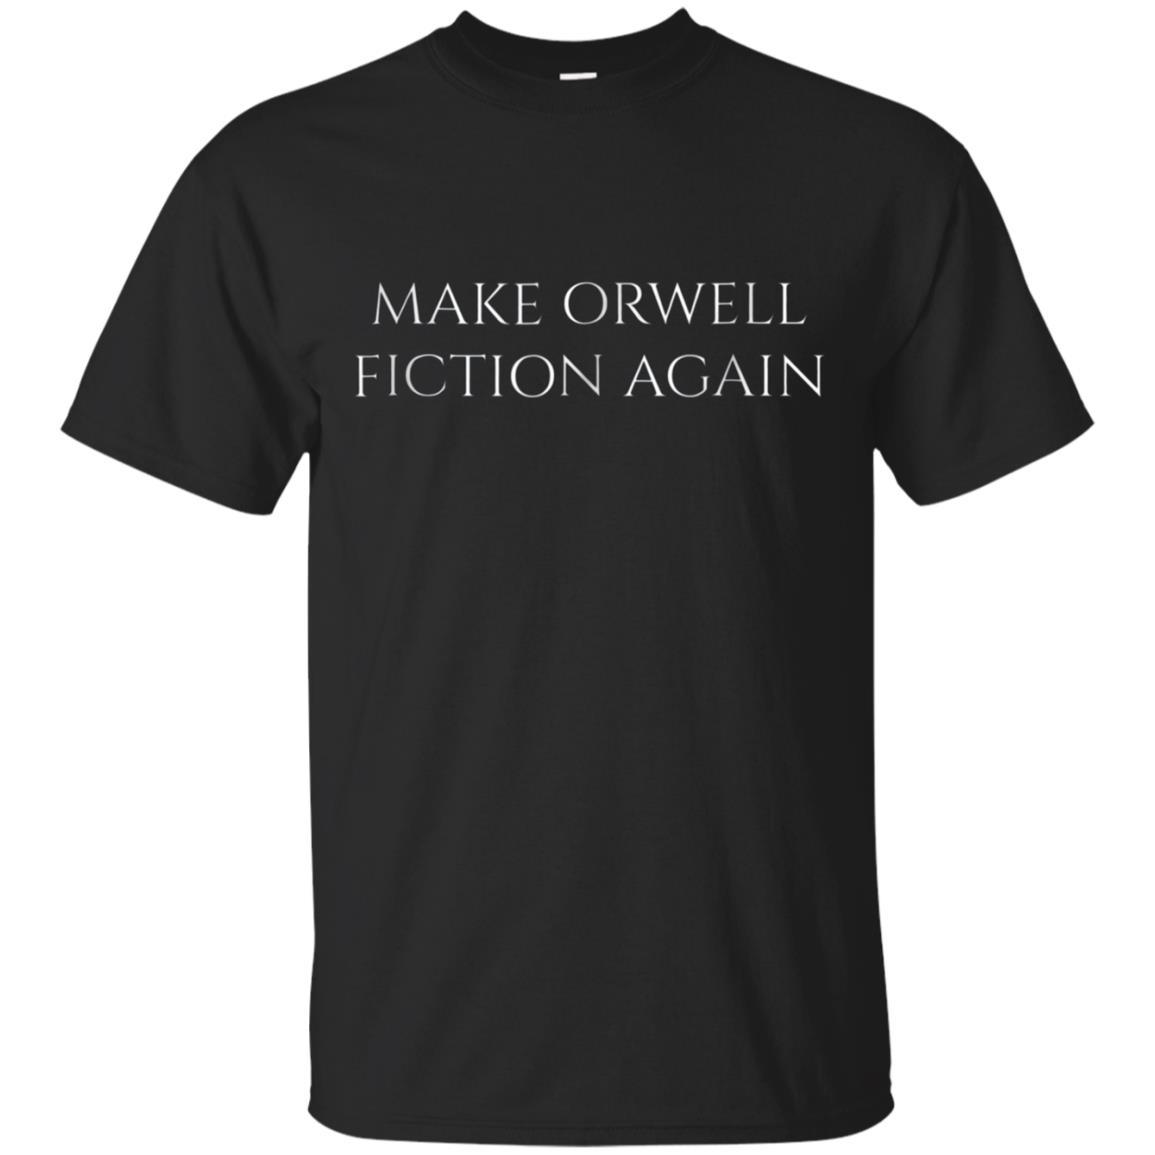 Awesome Make Orwell Fiction Again T Shirt